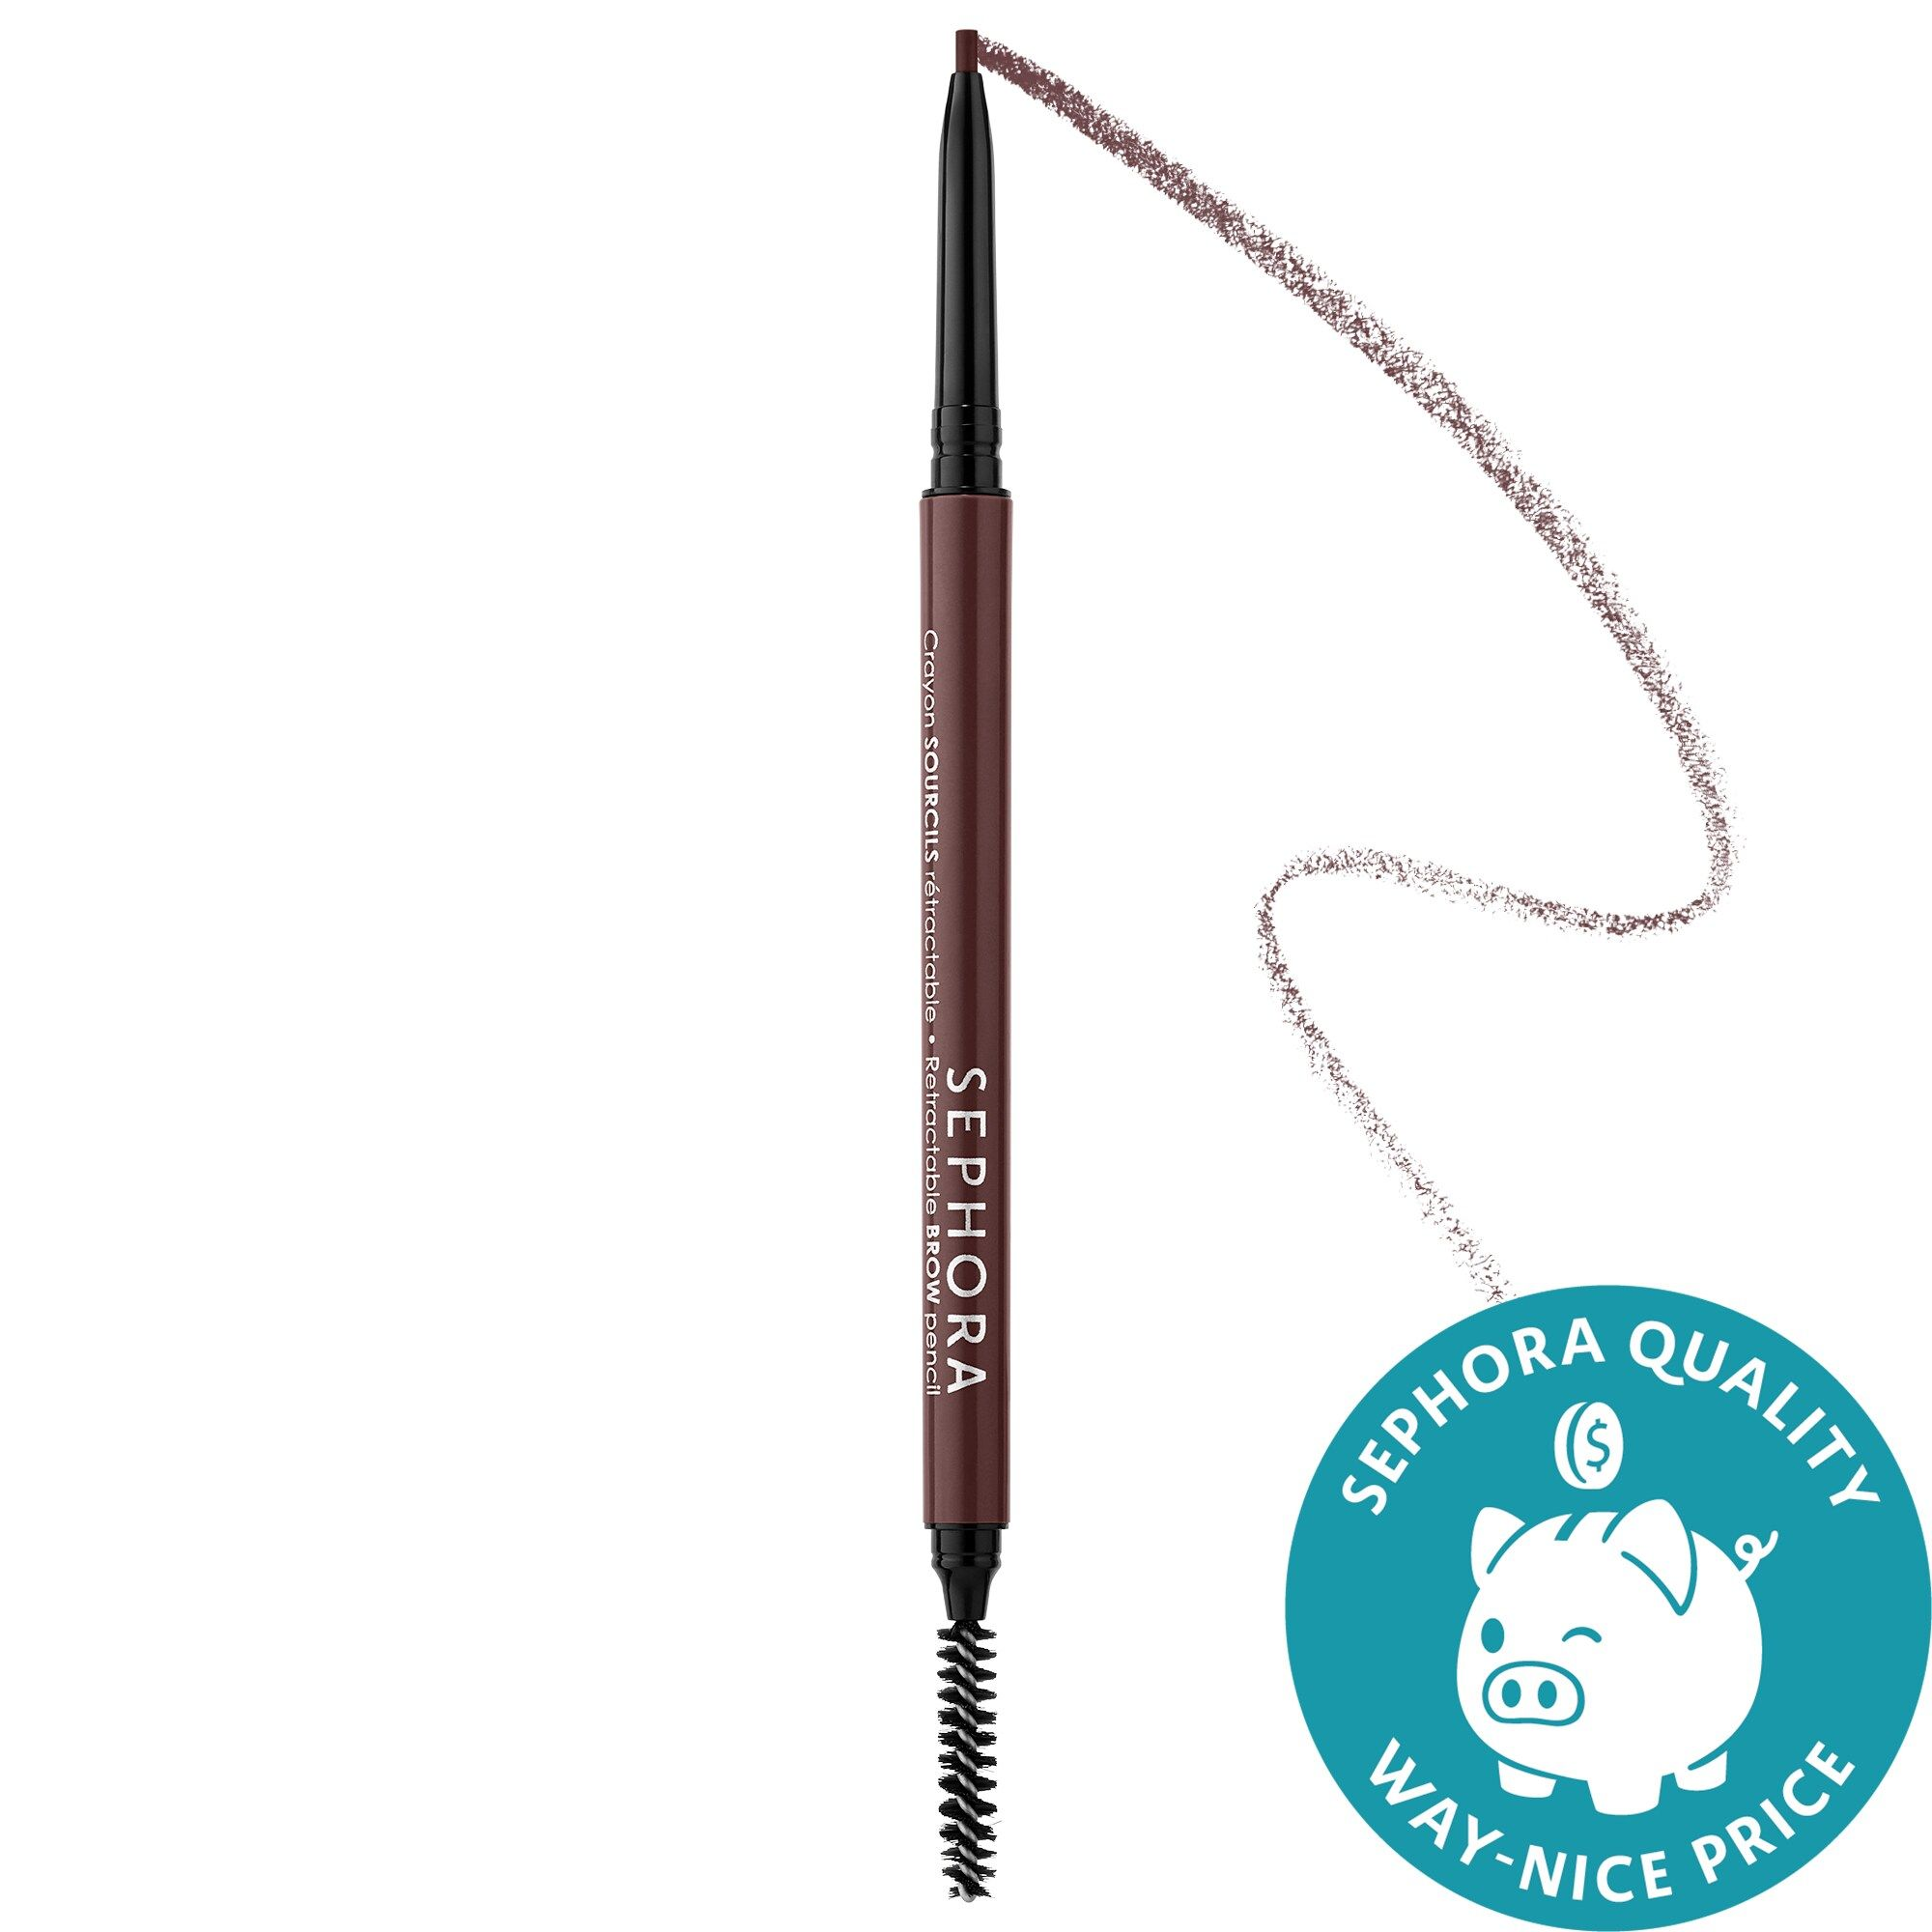 Retractable Brow Pencil Waterproof SEPHORA COLLECTION